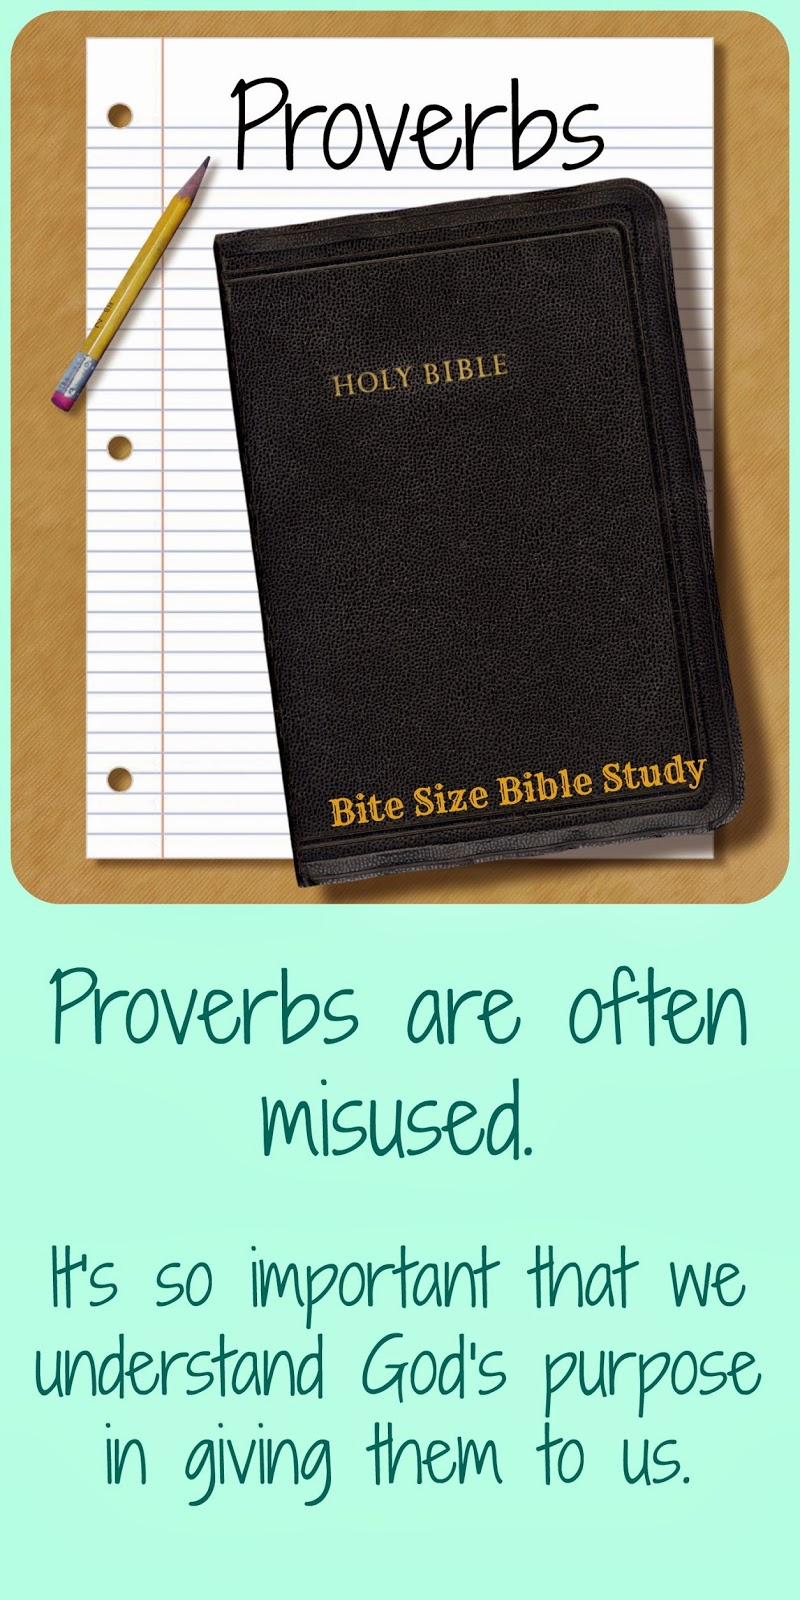 Proverbs, 2 Timothy 2:15, Promises, Wisdom writings